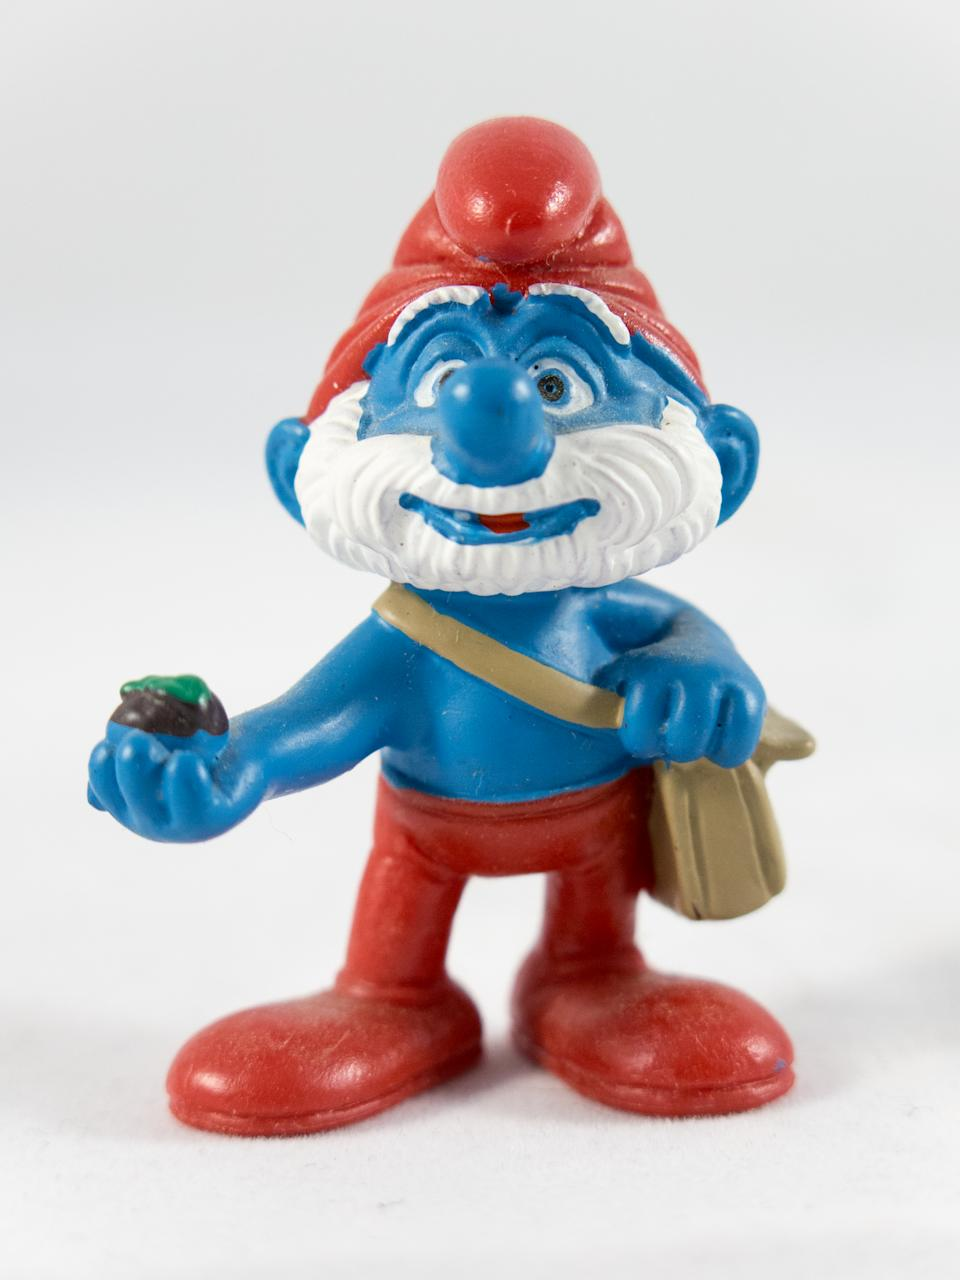 Milan, Italy - May 28th 2016: close up on Papa Smurf plastic toy, resting on a white background. Nothing else is visible in the frame.